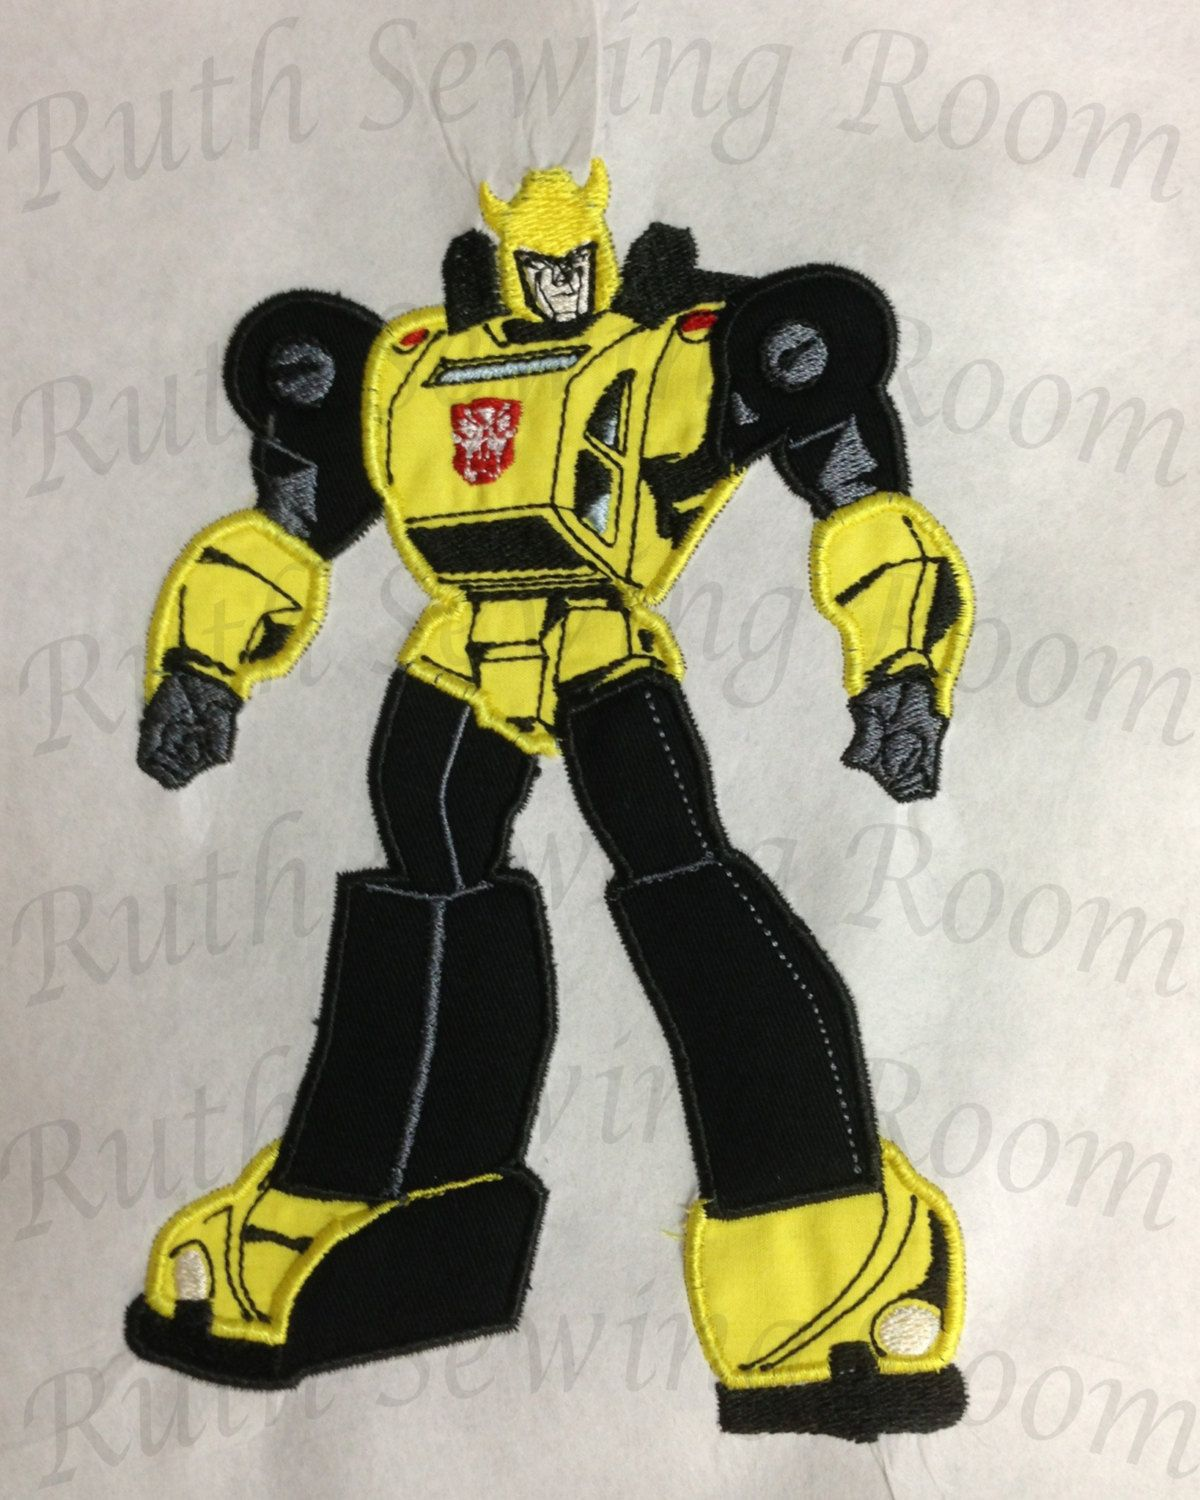 Bumble bee embroidery designs car pictures - Transformers Bumble Bee Car Applique Embroidery Design Includes Free Logo Embr View